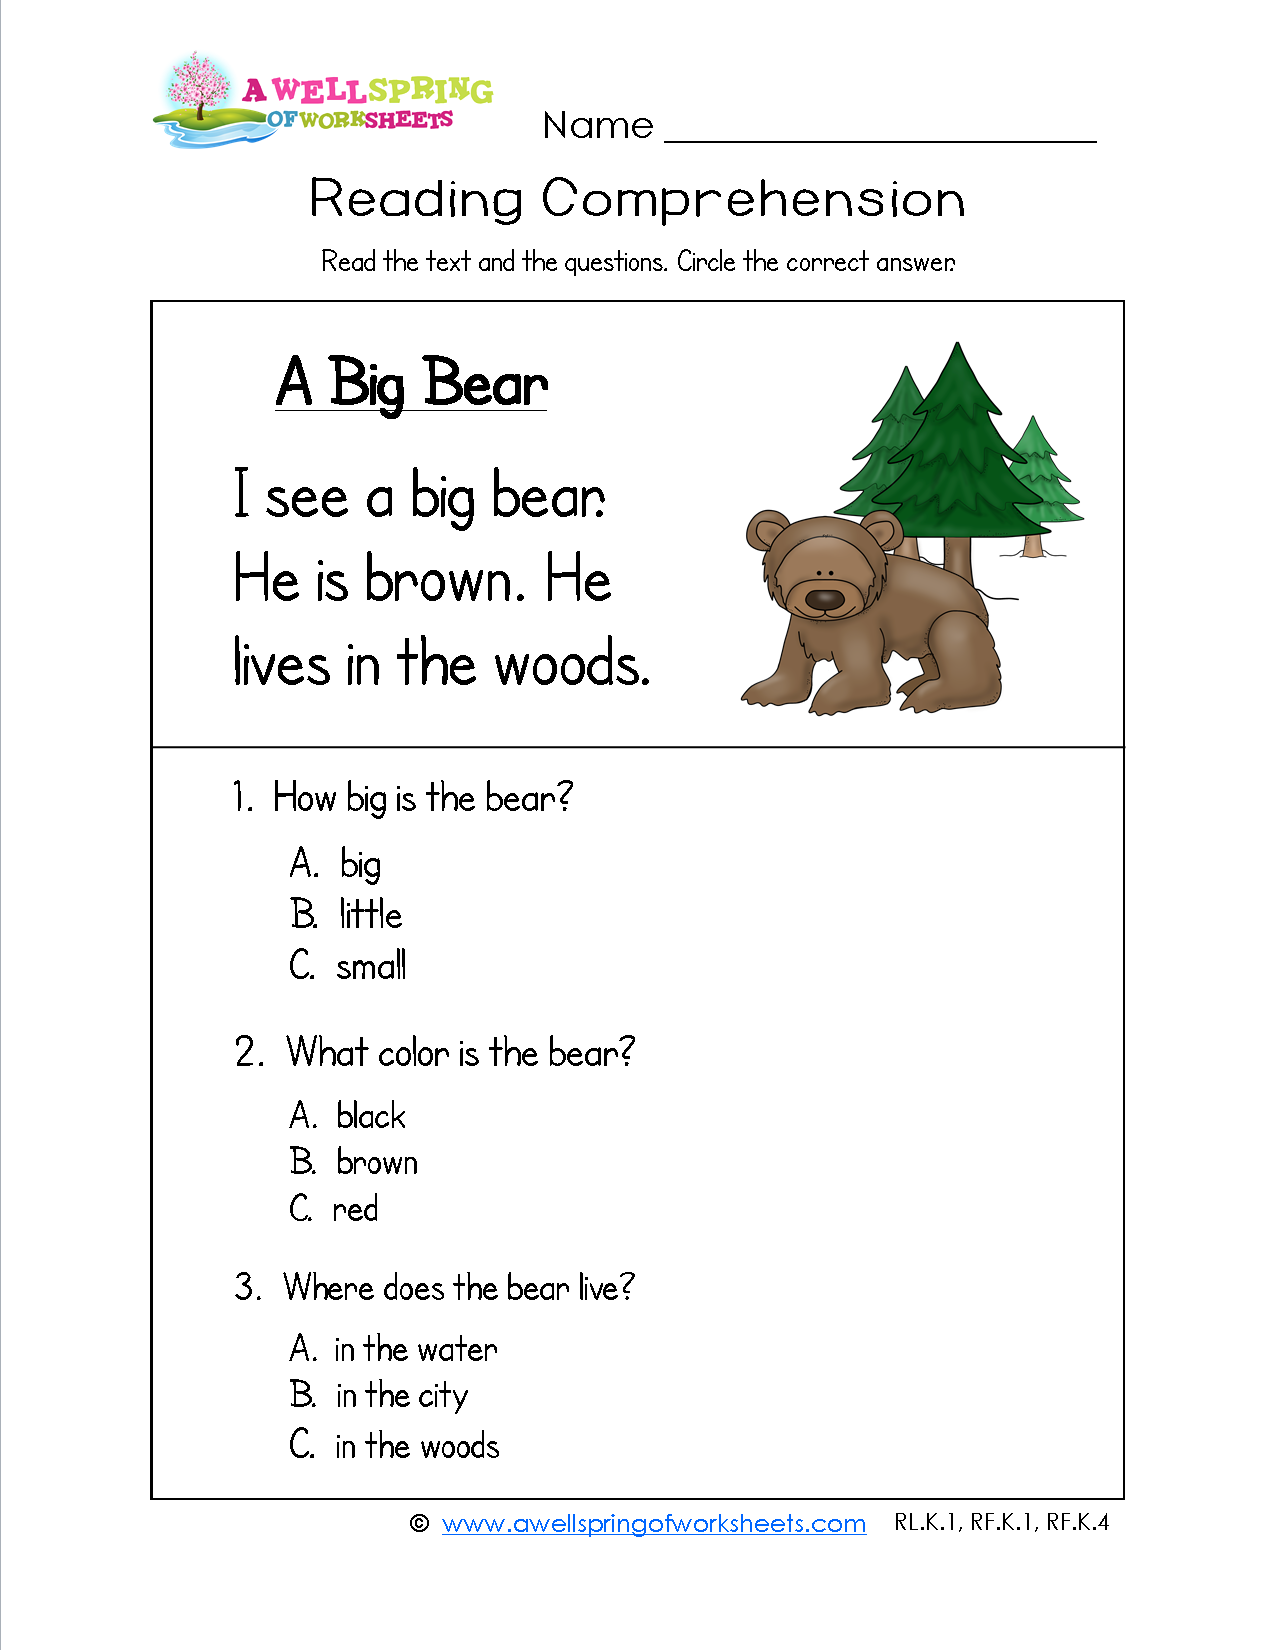 Kindergarten Reading Comprehension Worksheets There are